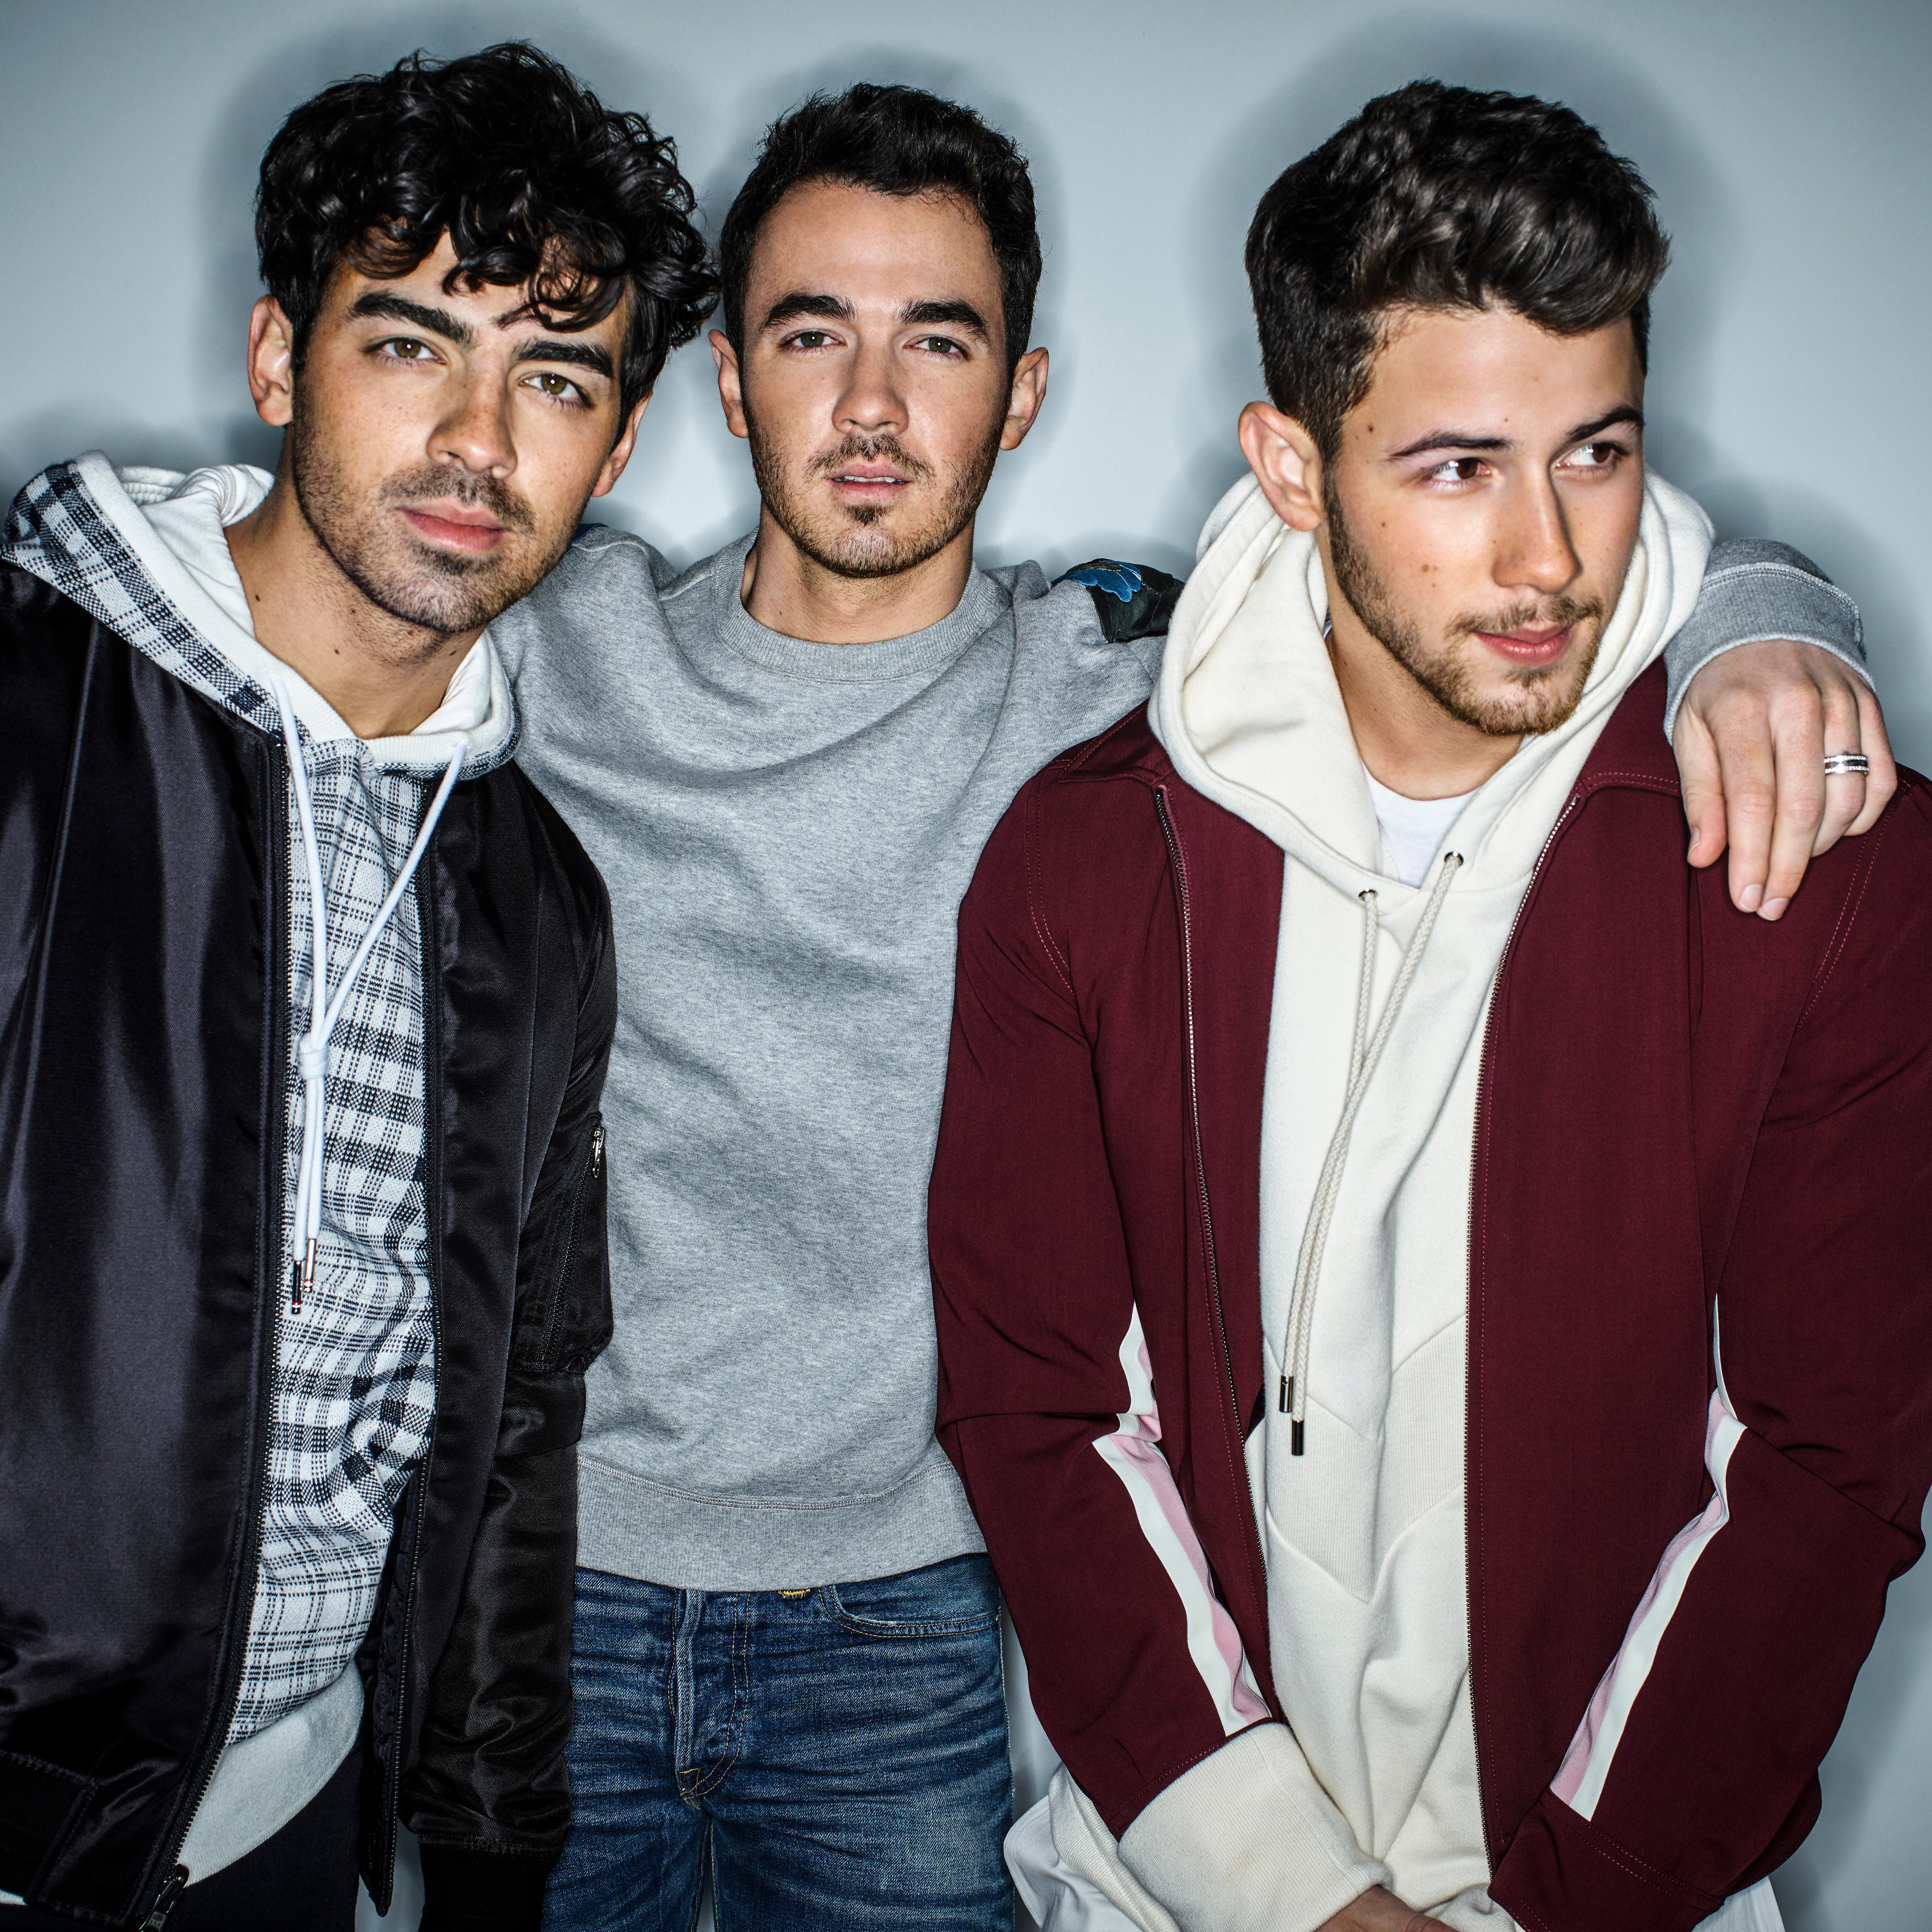 Jonas Brothers tour to play Phoenix in support of 'Happiness Begins'